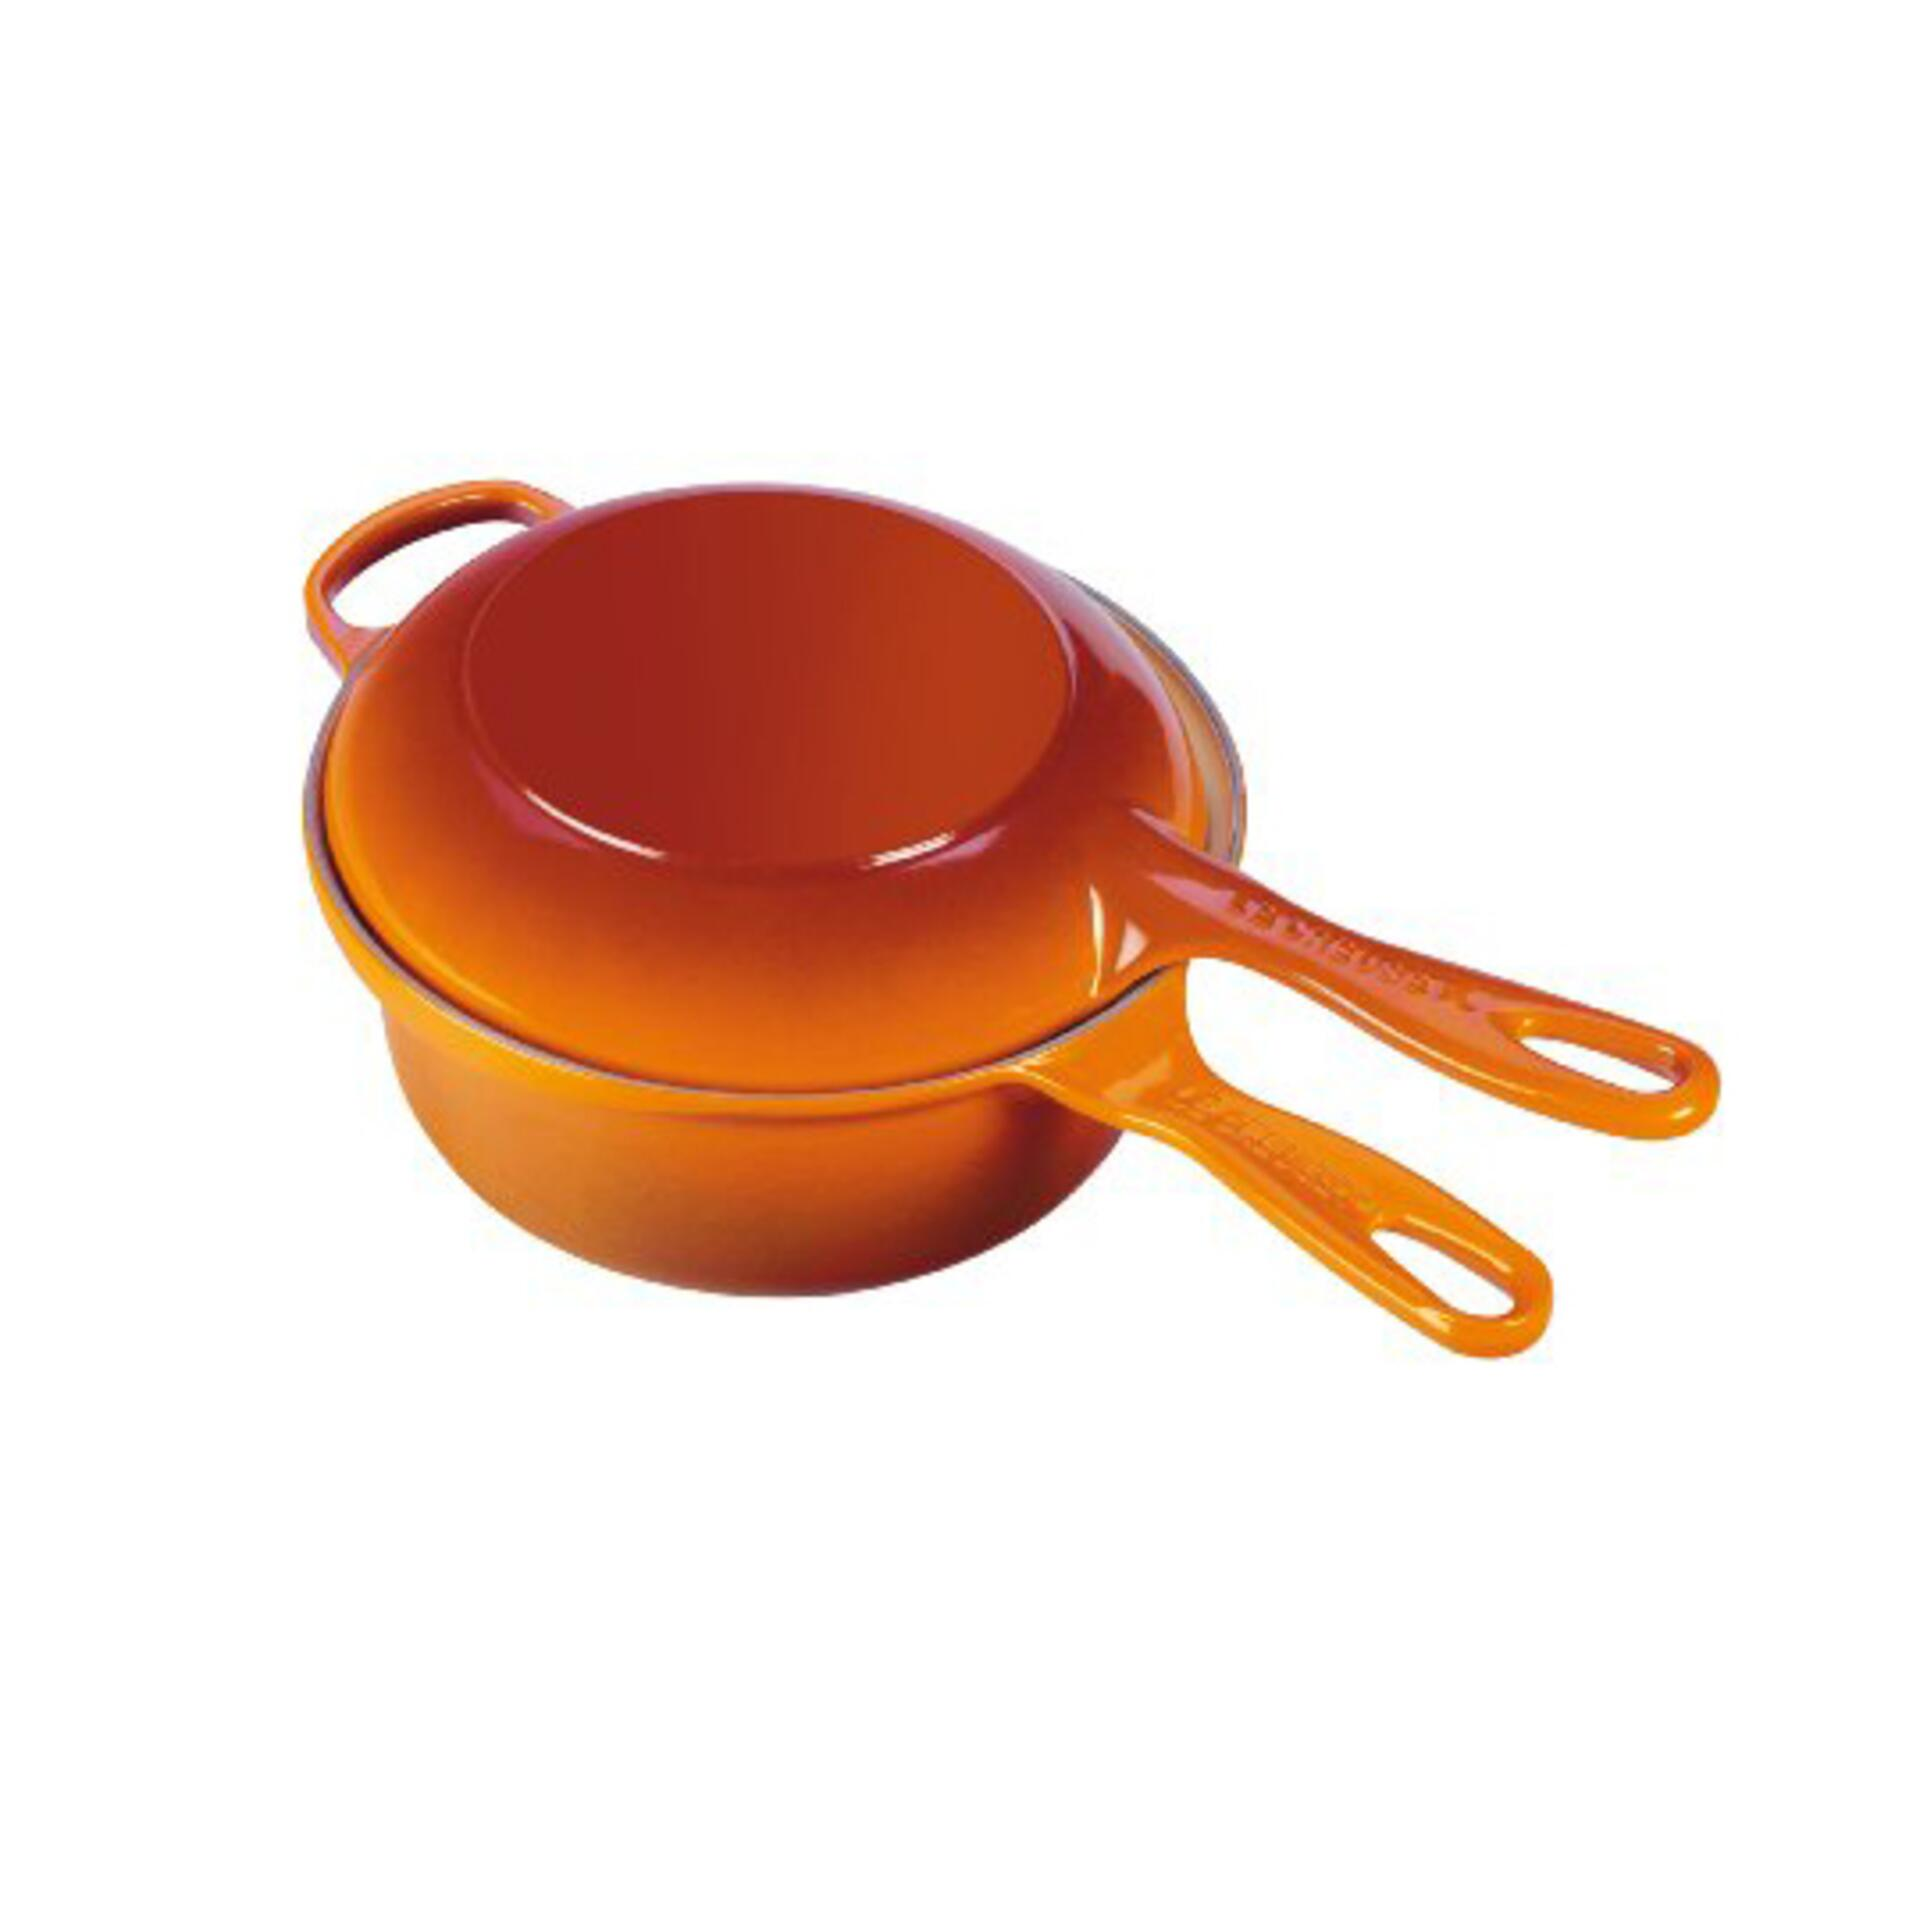 Le Creuset Marmitout 2 in 1 Ofenrot